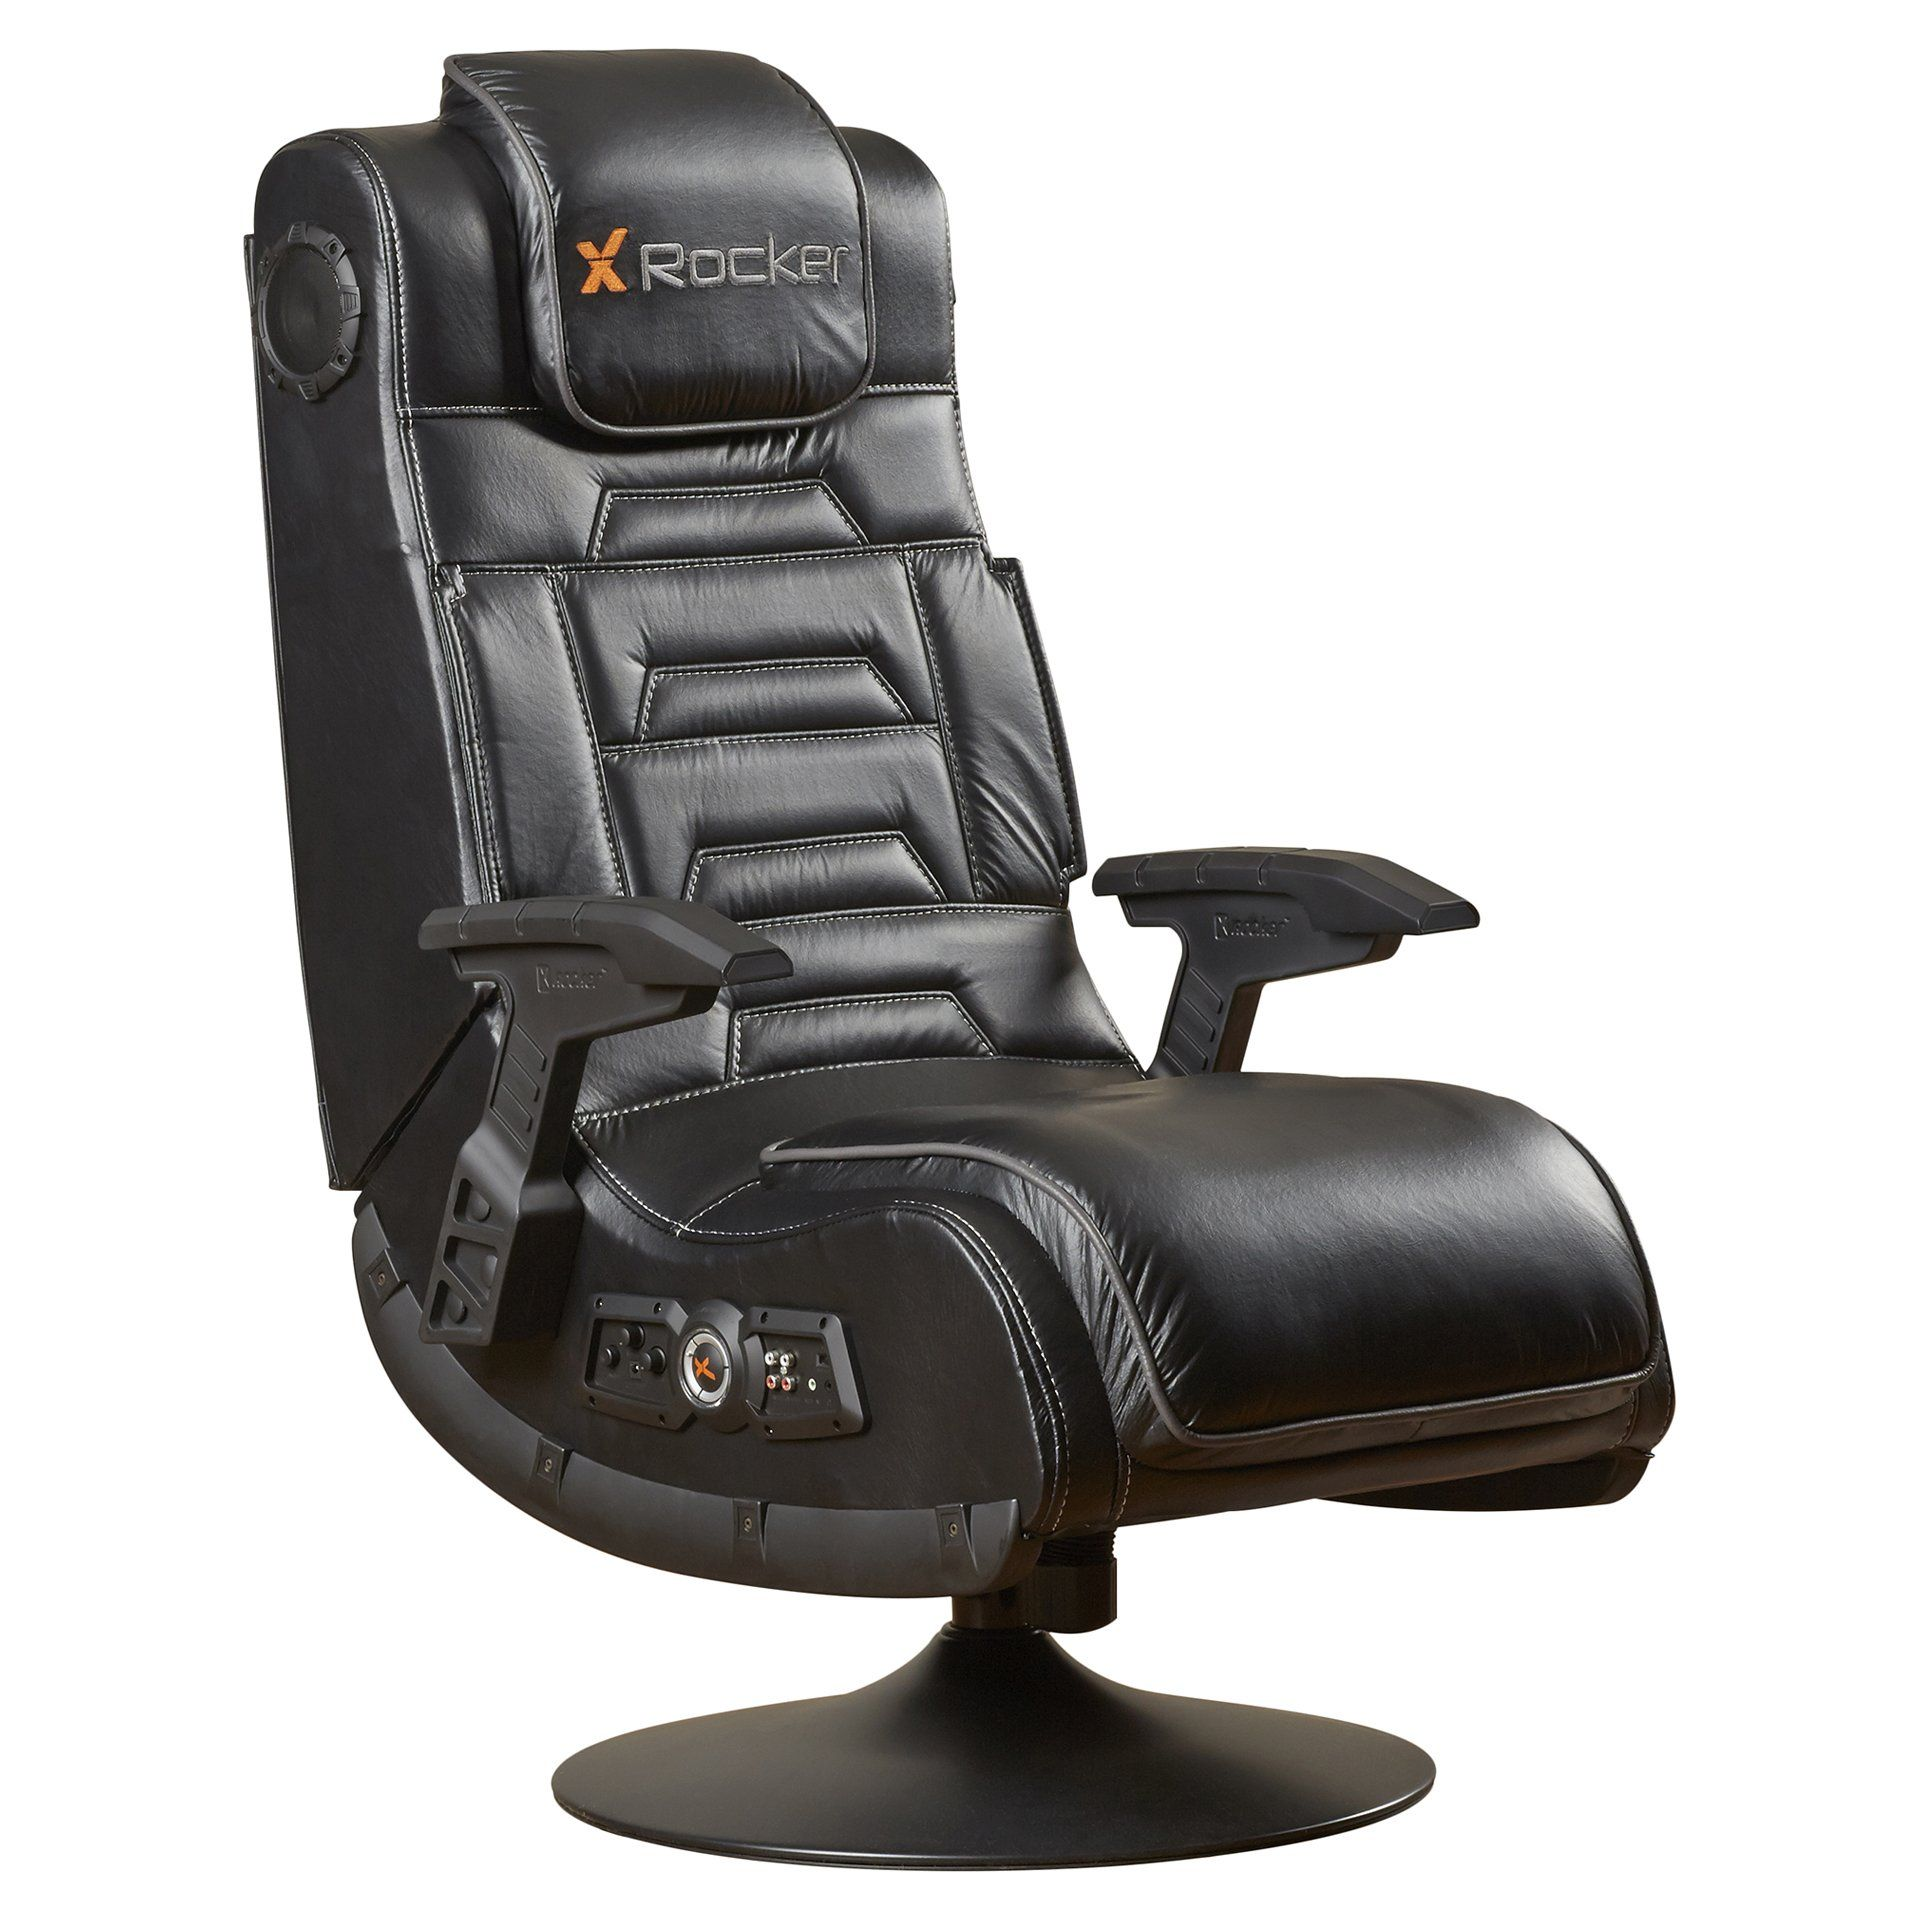 Gaming Sessel Konsole Massage Gaming Chair Lloyd Pinterest Chair Gaming Chair Und